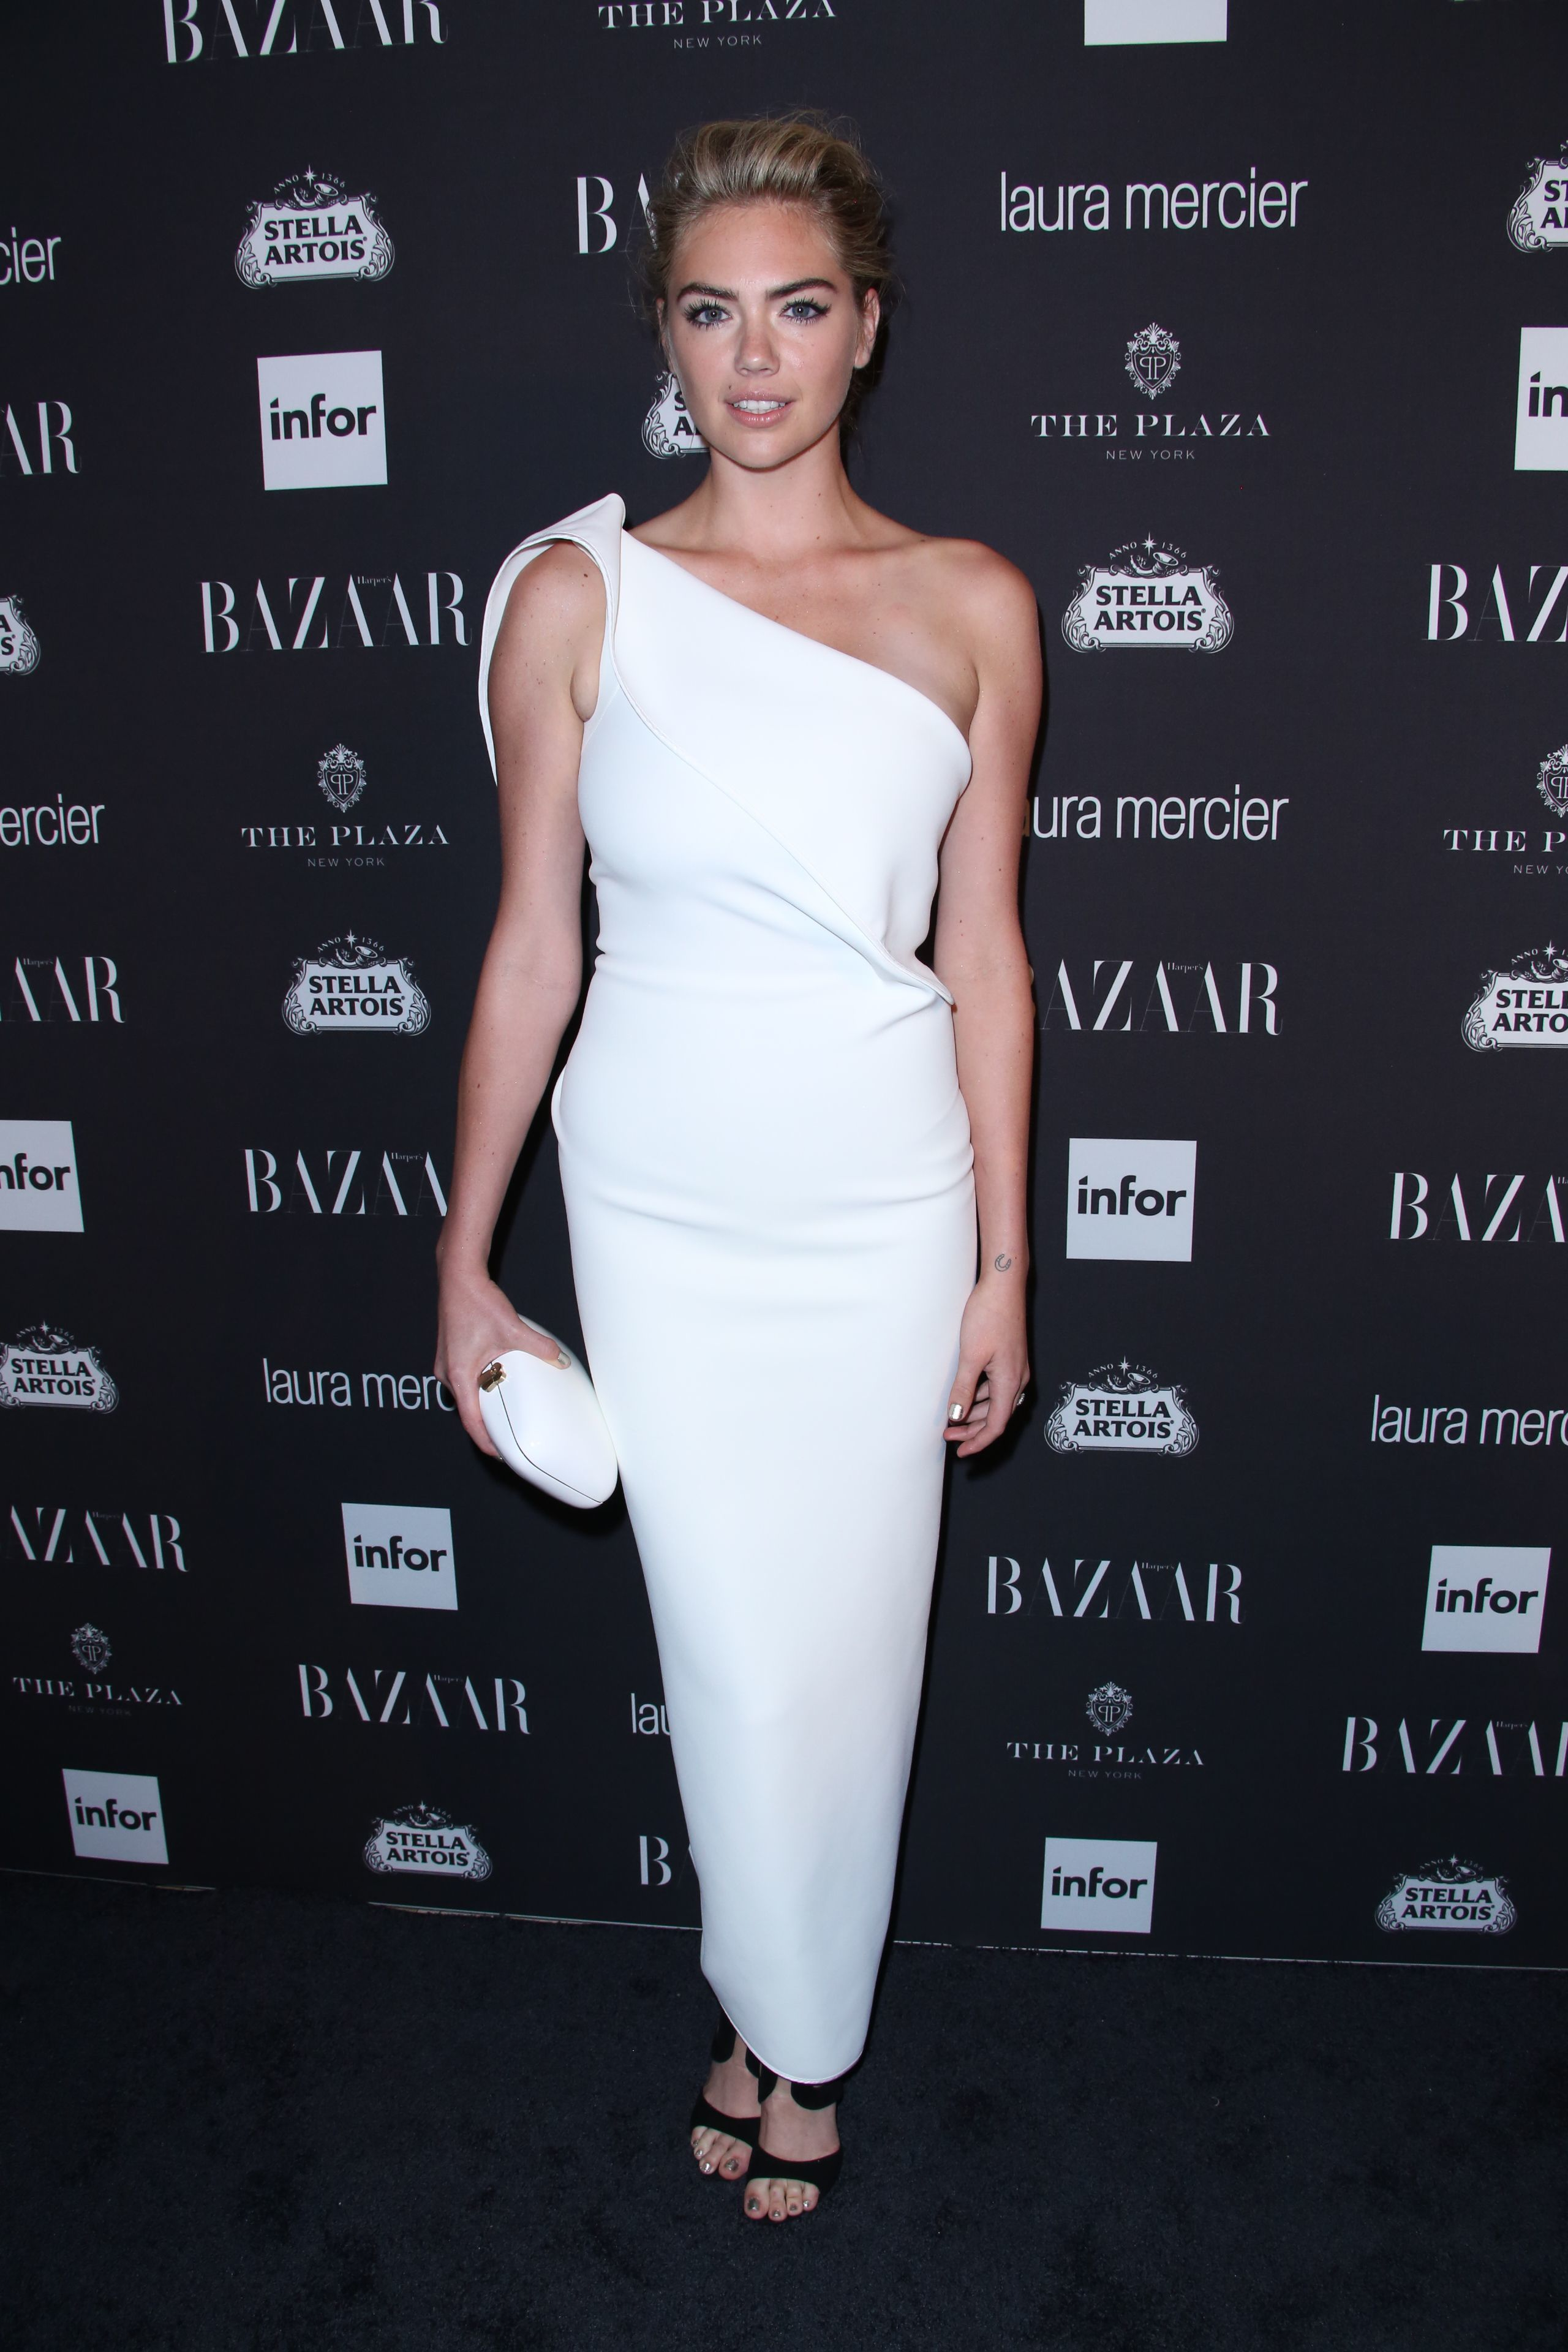 Kate Upton was reportedly being a diva about SI swimsuit cover